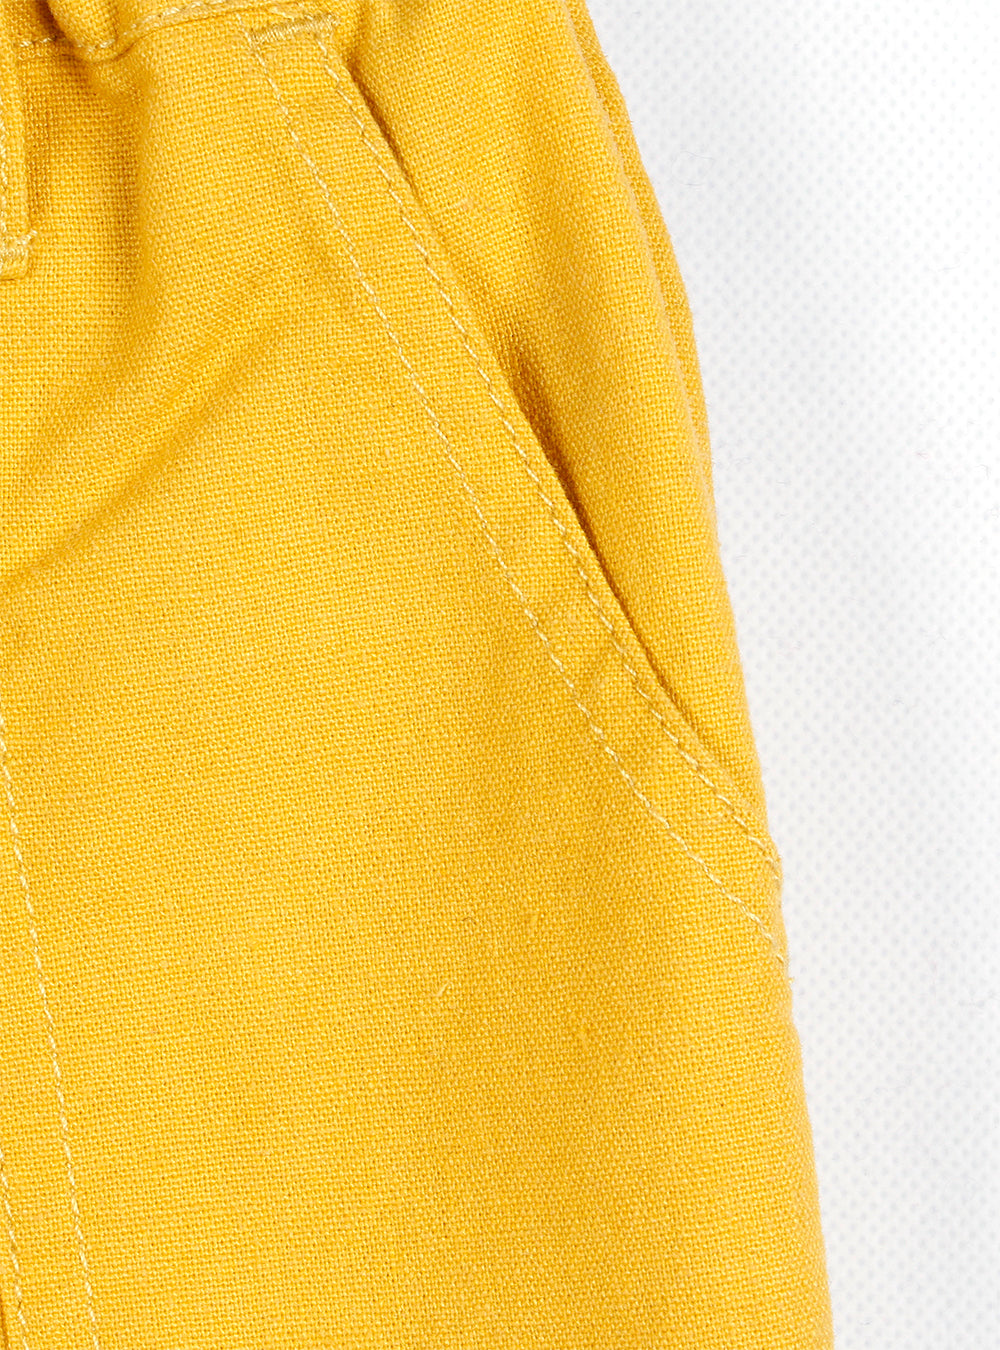 LINEN ROLL-UP PANTS (Yellow/Black) SS20